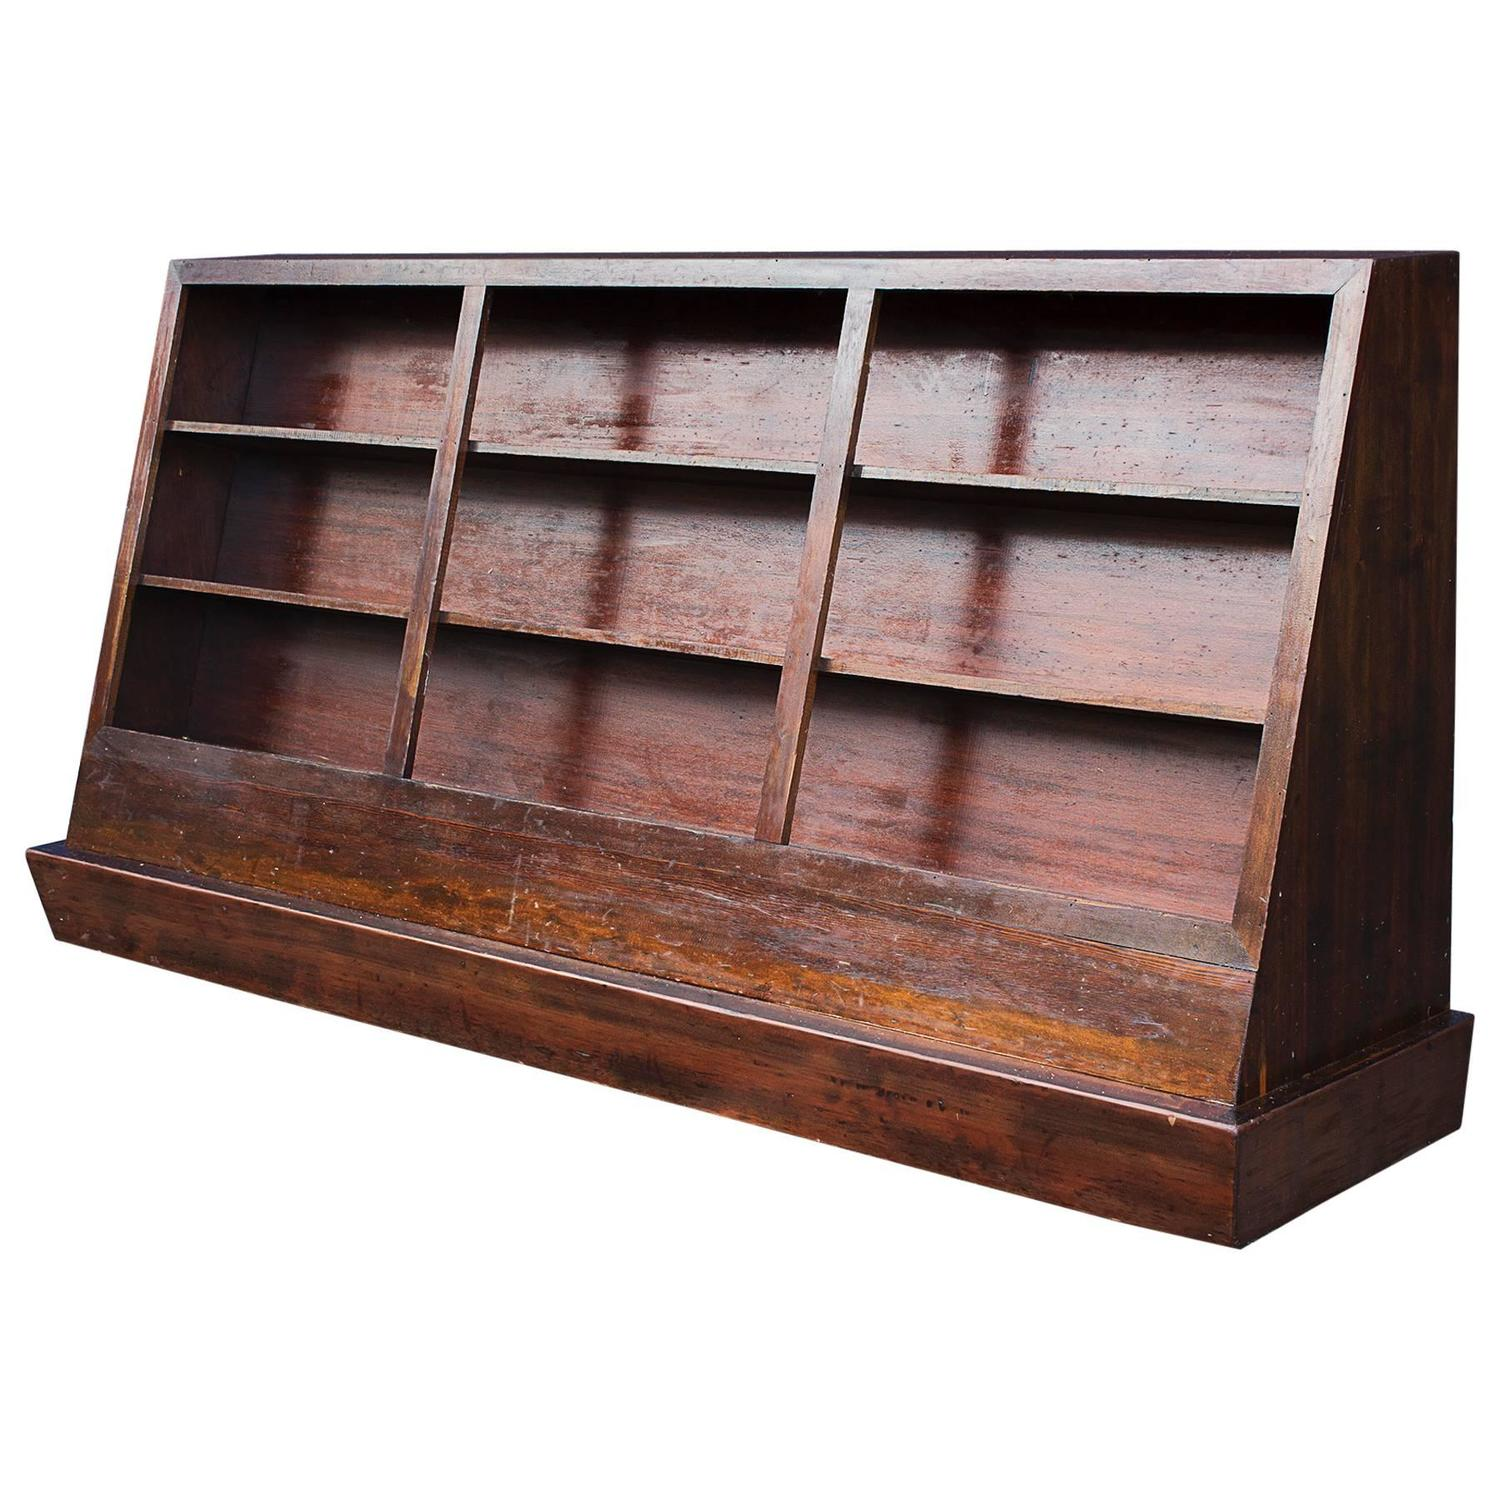 Marvelous photograph of Large Vintage Bookcase on Casters circa 1950s For Sale at 1stdibs with #965A35 color and 1500x1500 pixels